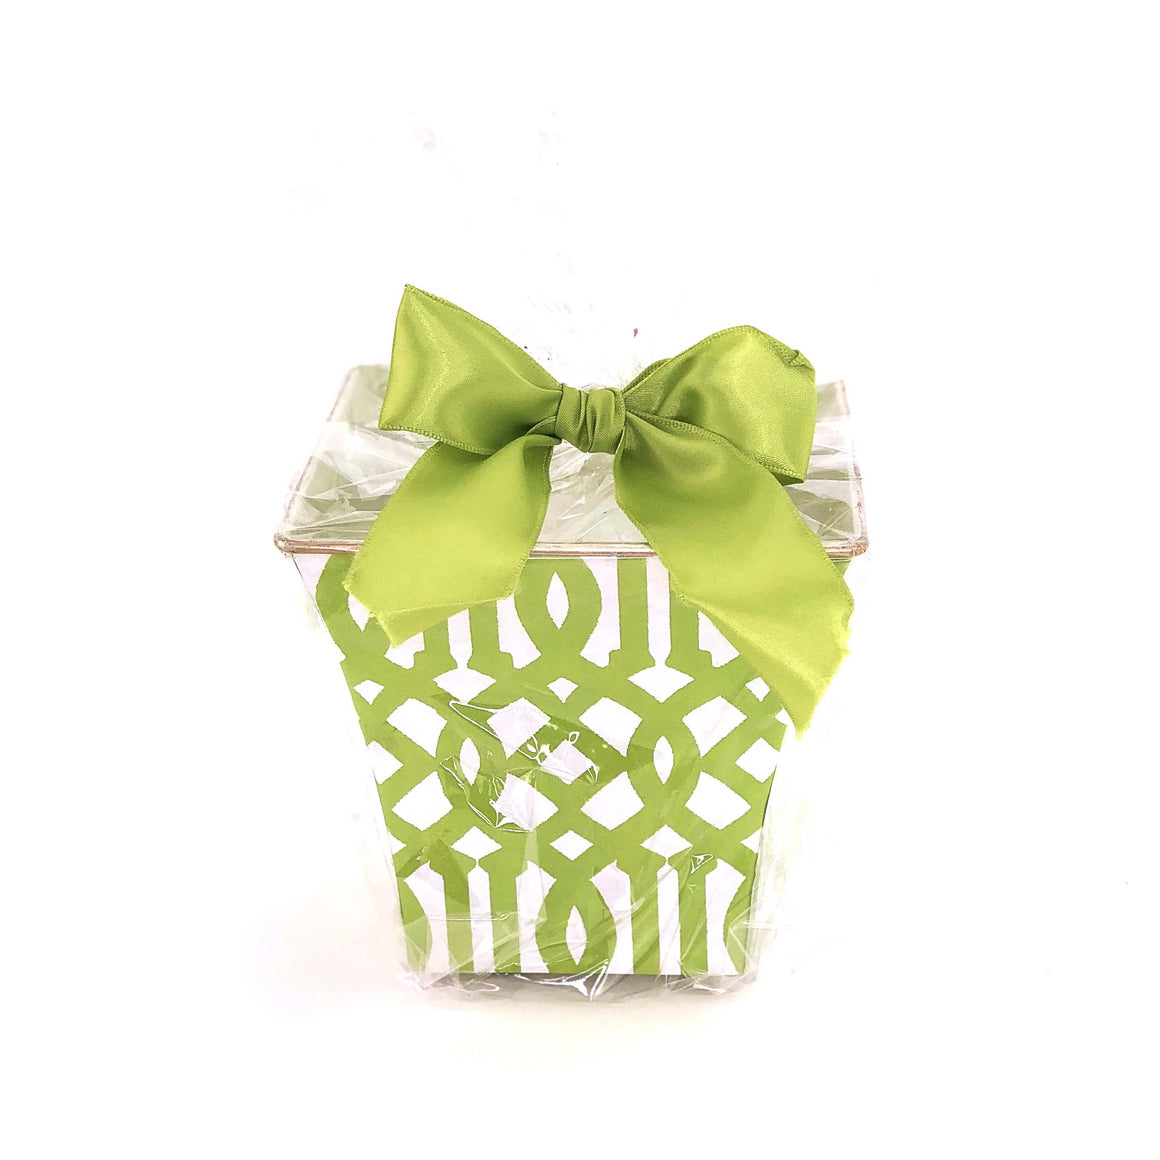 Green Fret Cachepot Candle with Monogram - The Preppy Bunny